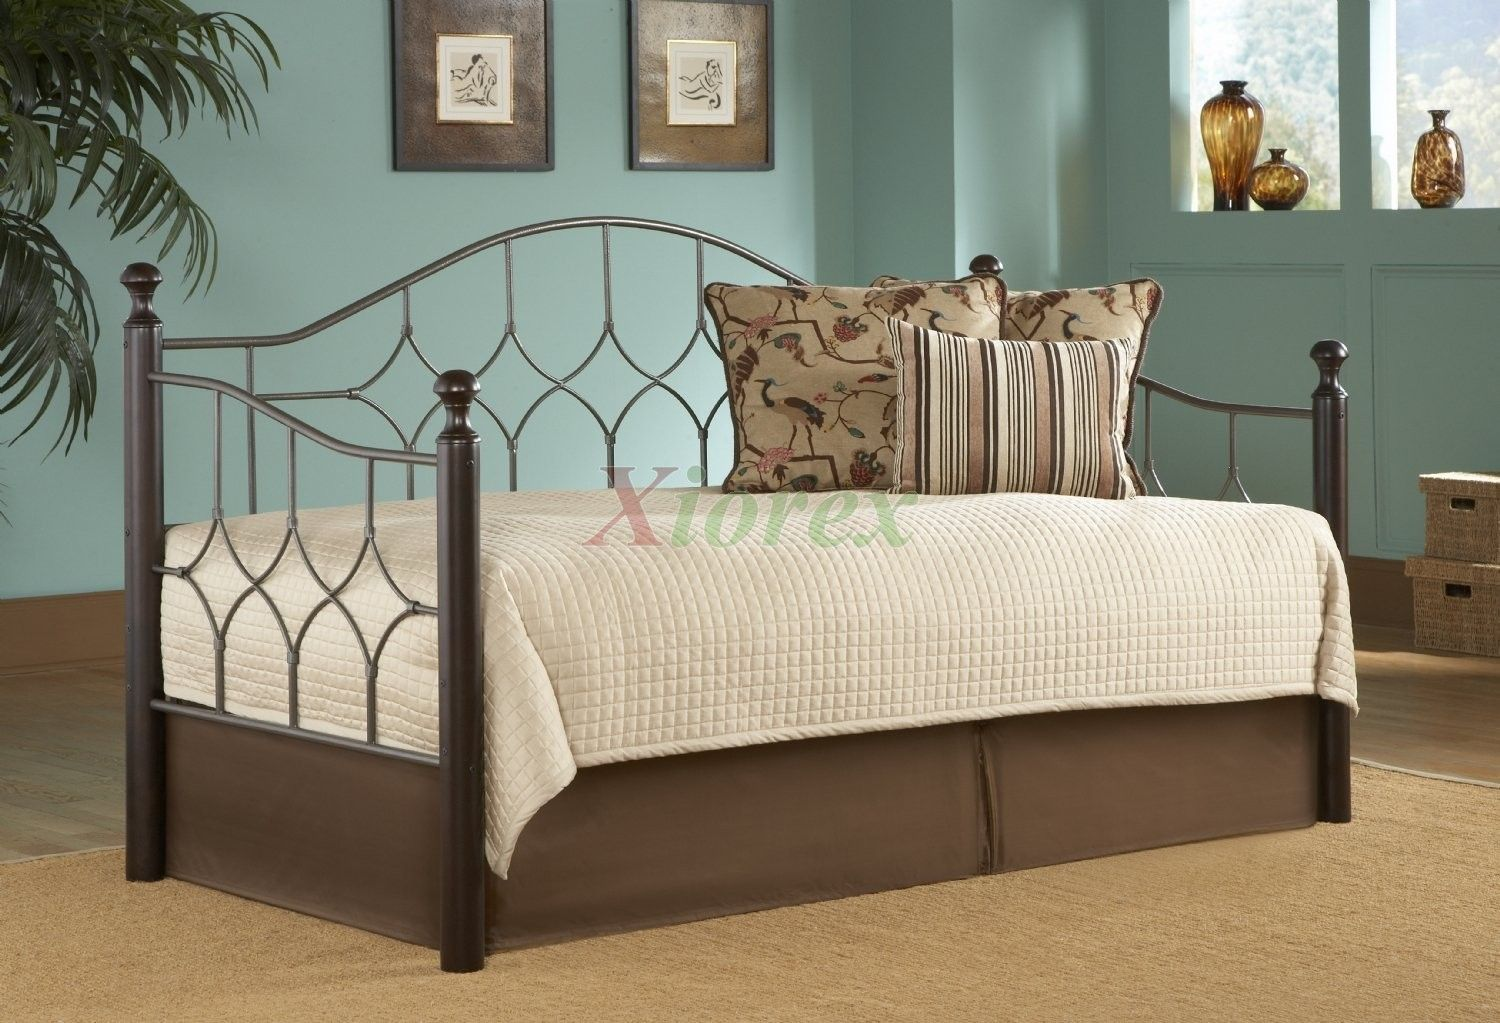 Daybed with trundle full size awesome queen size daybed trundle with pillow  daybeds  pinterest